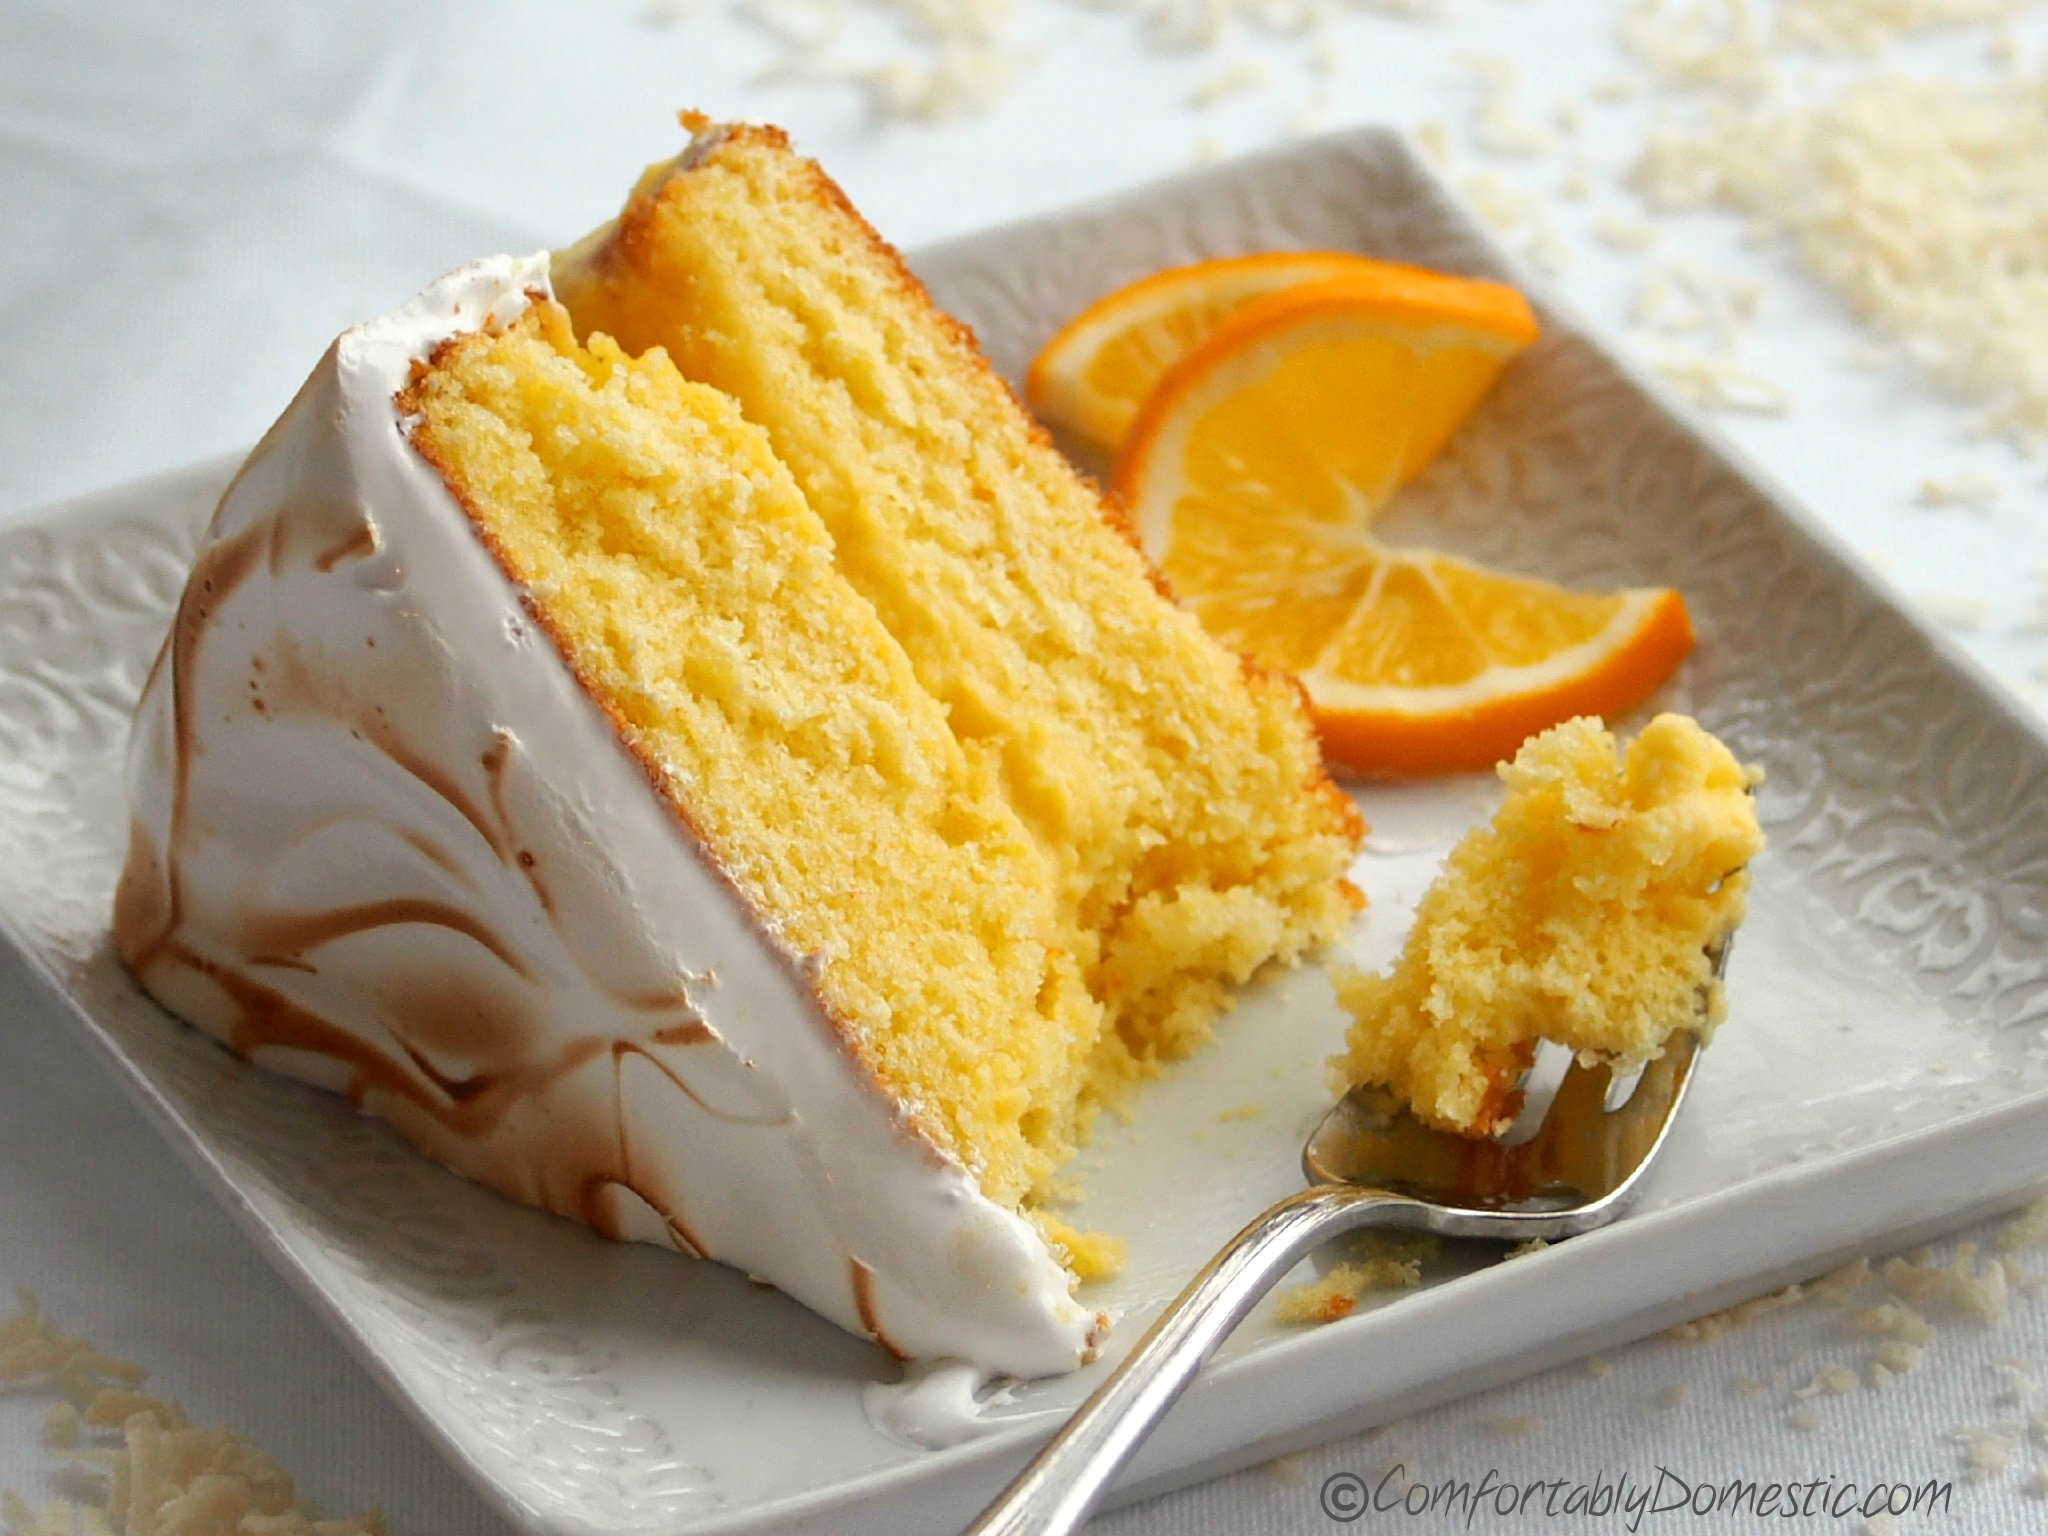 The result is fluffy, coconut flavored cake, filled with tangy lemon ...